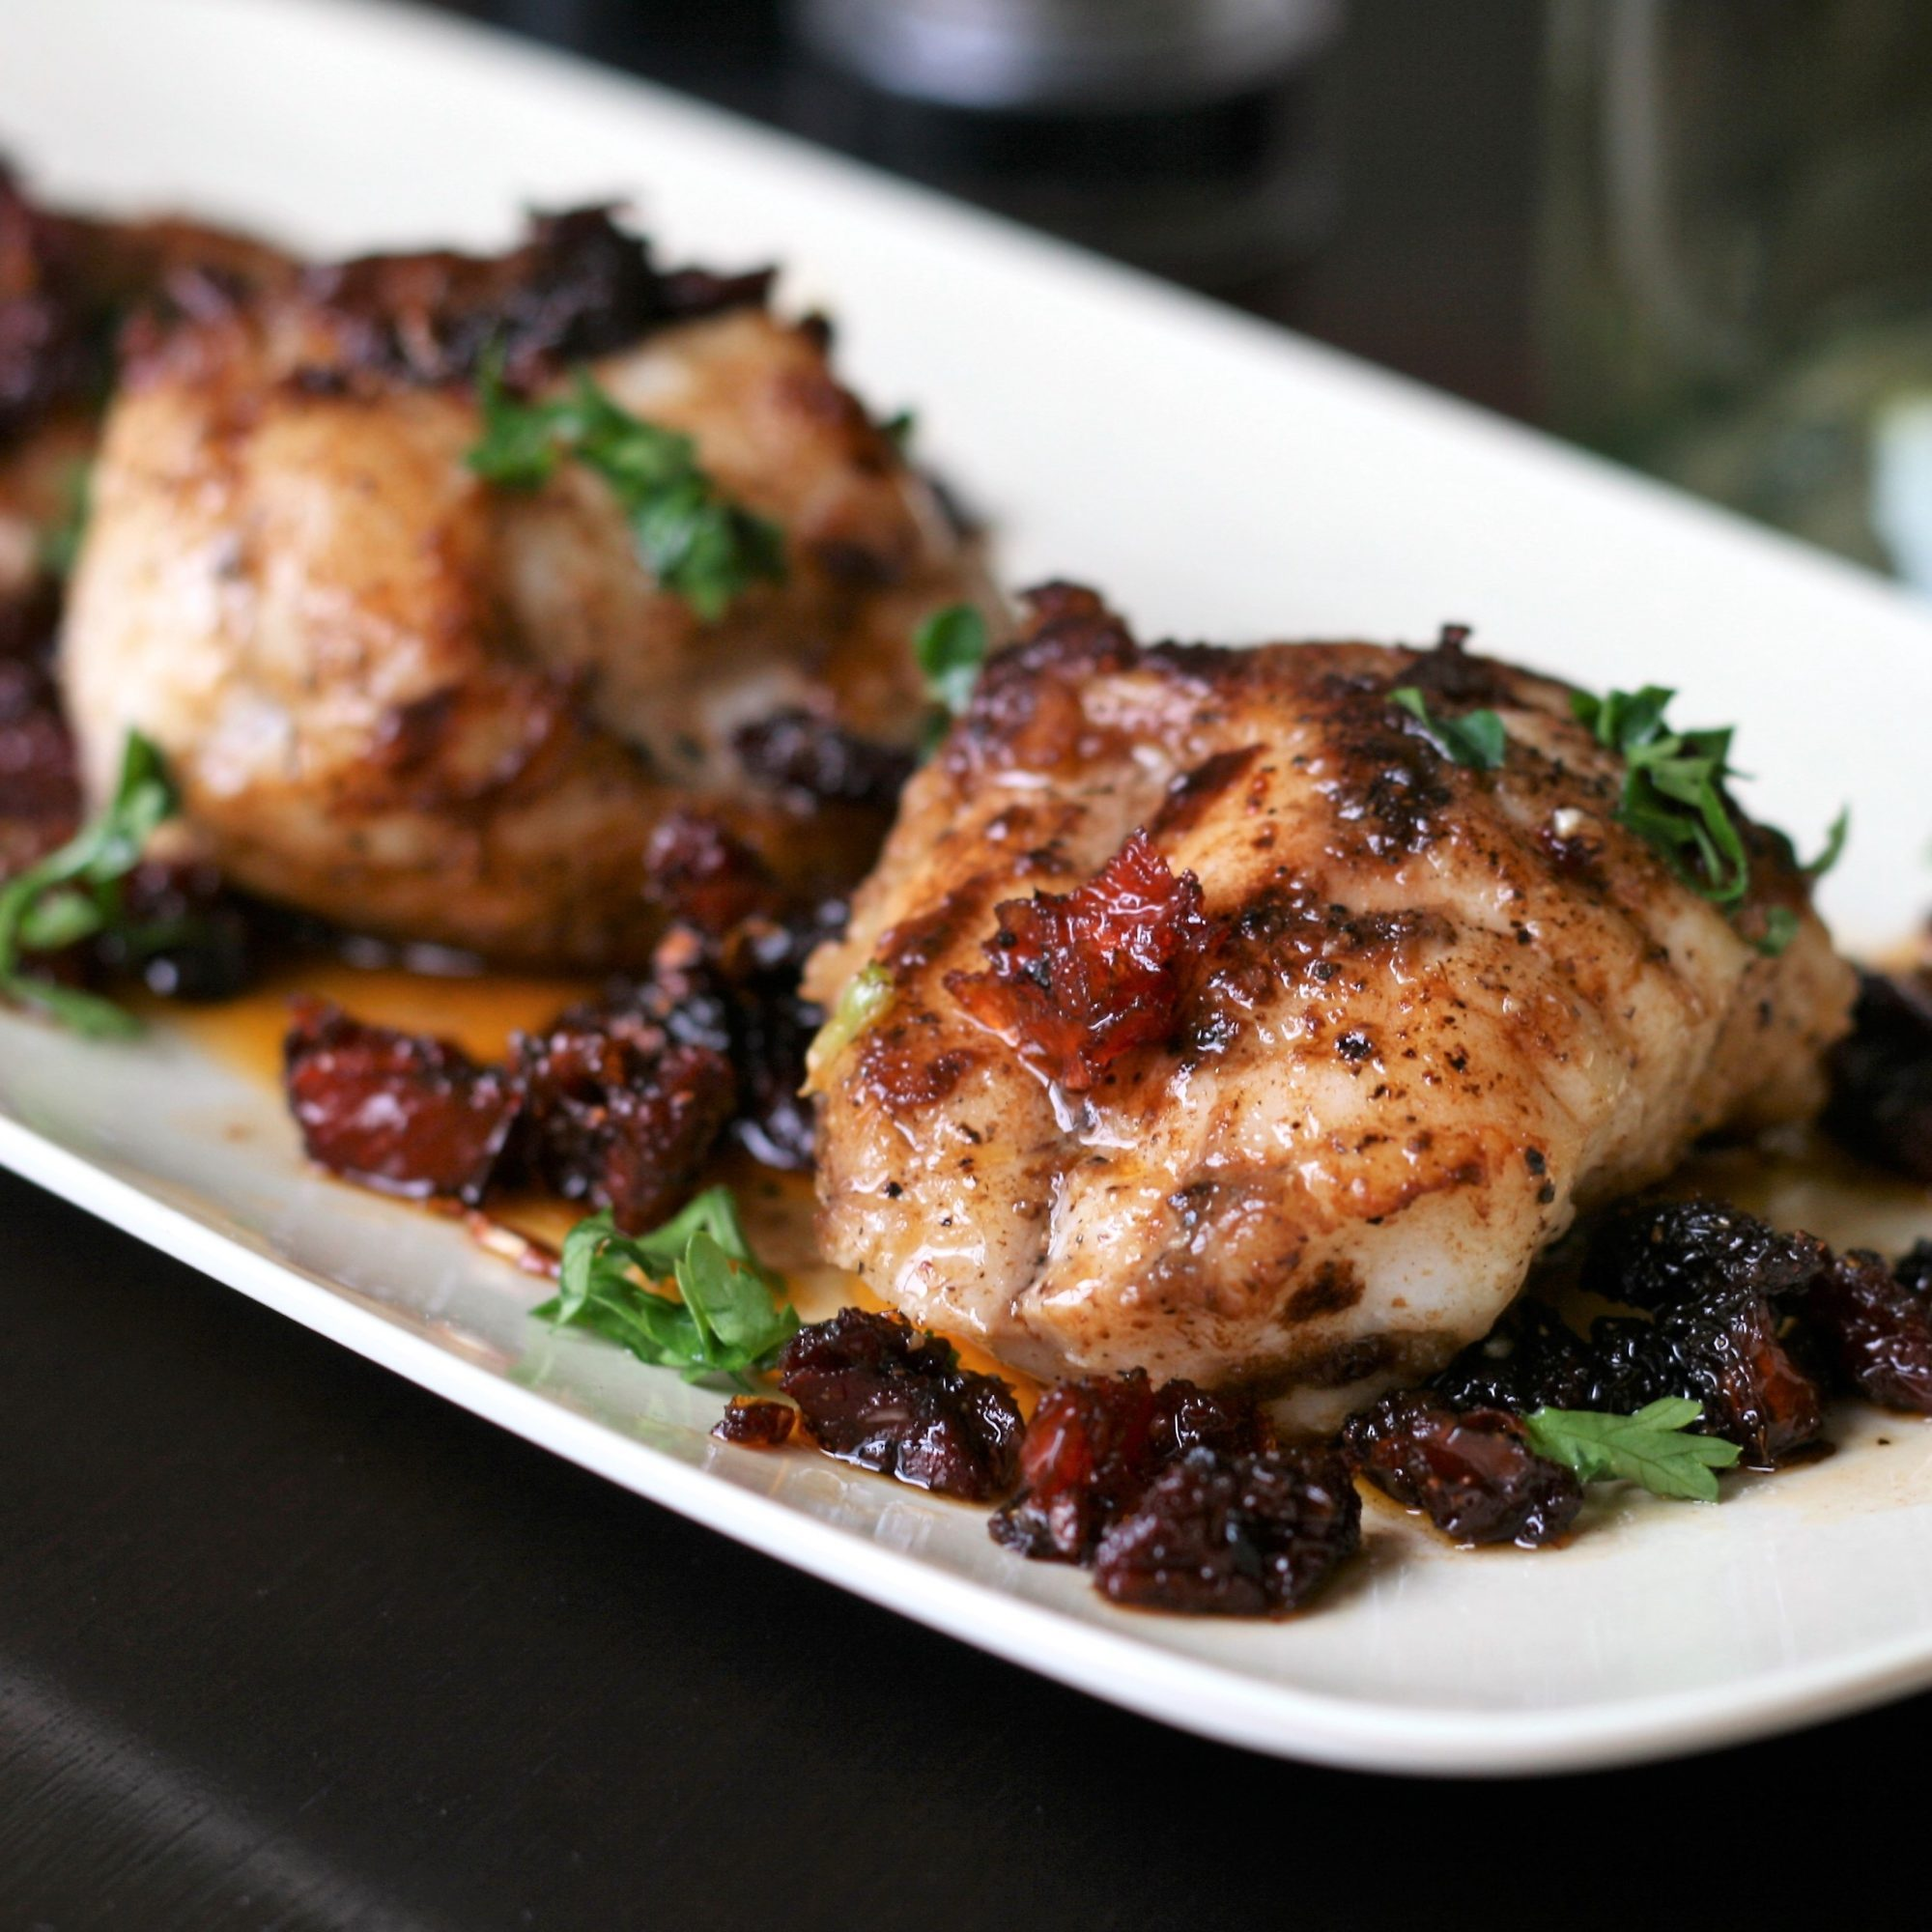 Seared Monkfish with Balsamic and Sun-Dried Tomatoes